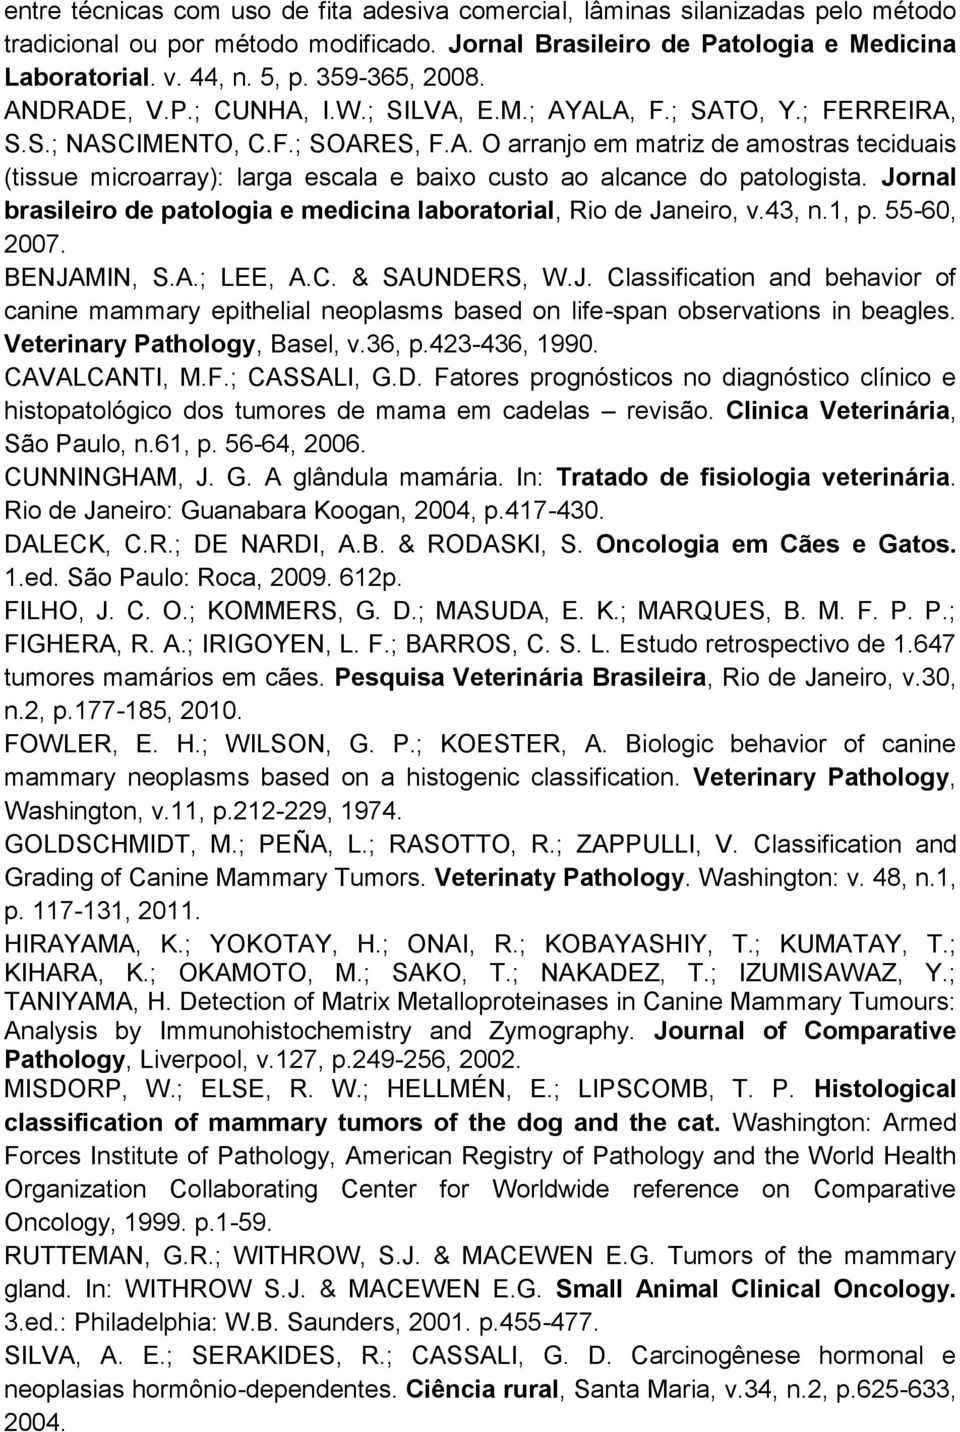 Jornal brasileiro de patologia e medicina laboratorial, Rio de Janeiro, v.43, n.1, p. 55-60, 2007. BENJAMIN, S.A.; LEE, A.C. & SAUNDERS, W.J. Classification and behavior of canine mammary epithelial neoplasms based on life-span observations in beagles.